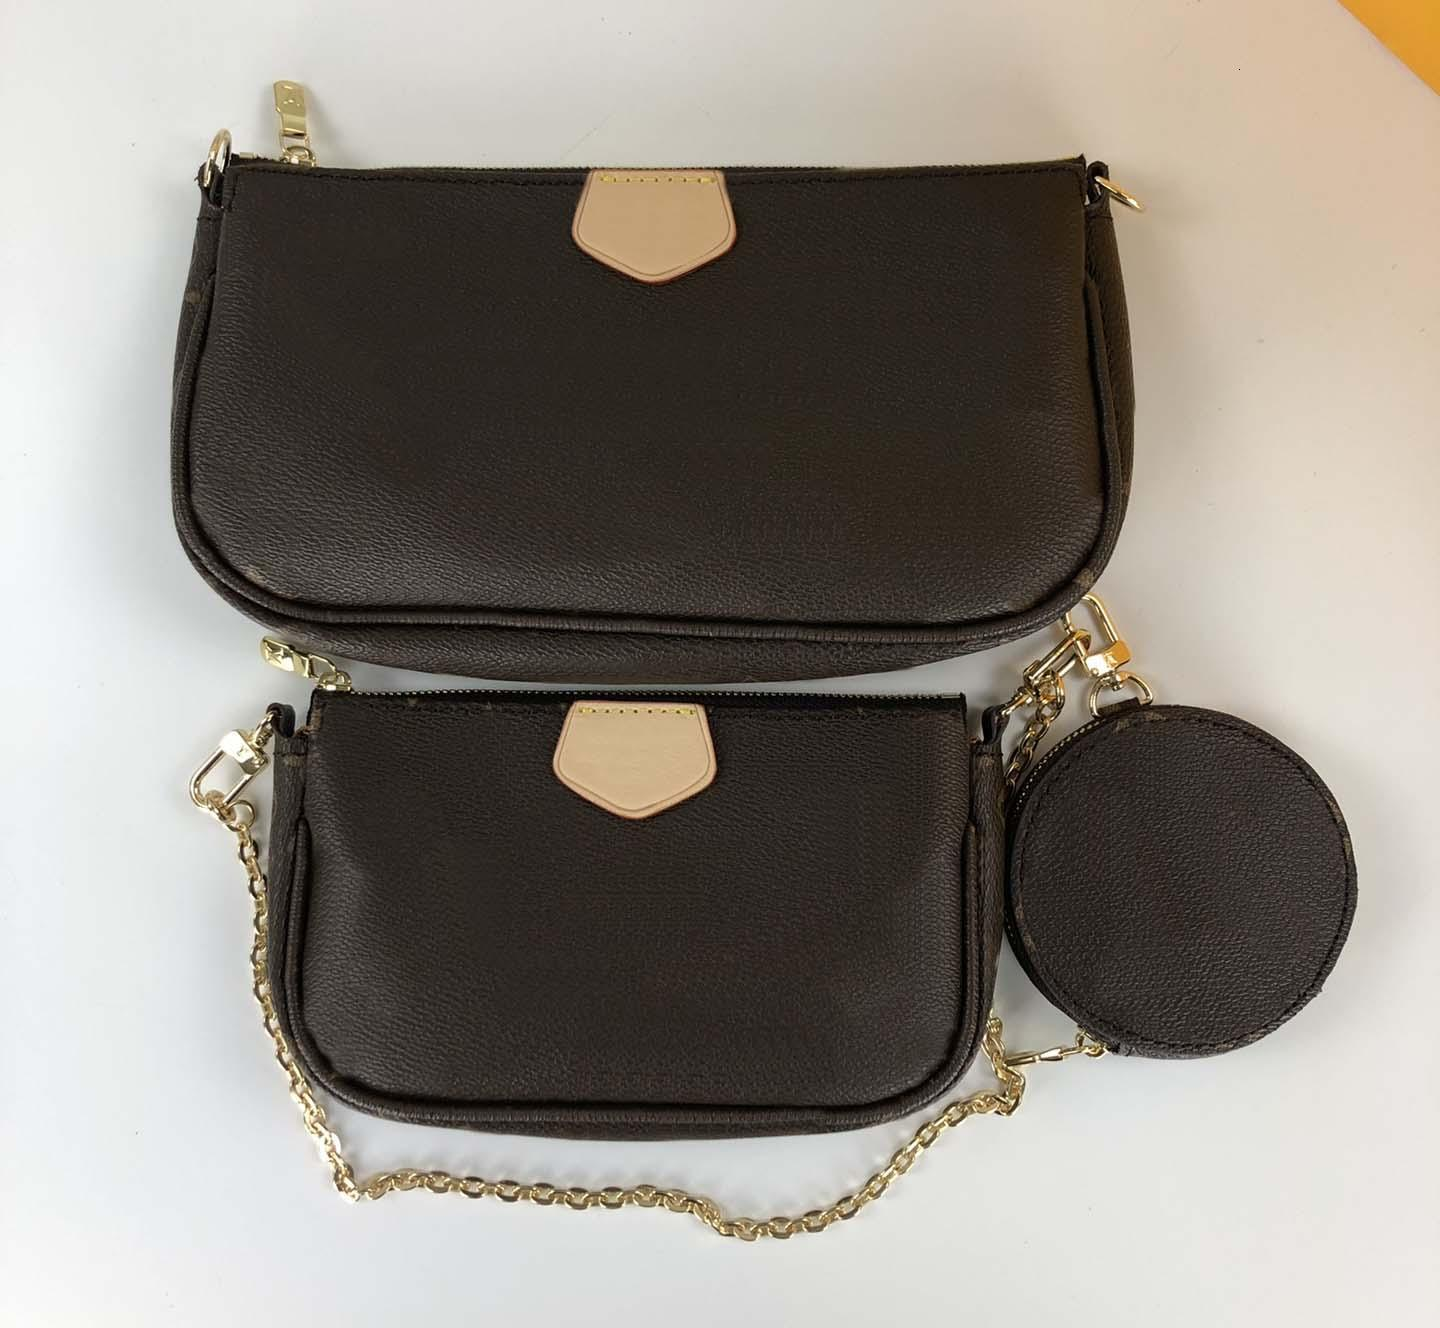 Luxurys Designers Women Bags lady three piece satchel 4832 coin wallet Messenger small postman bag slanting suitable for the fashionable choice of daily life